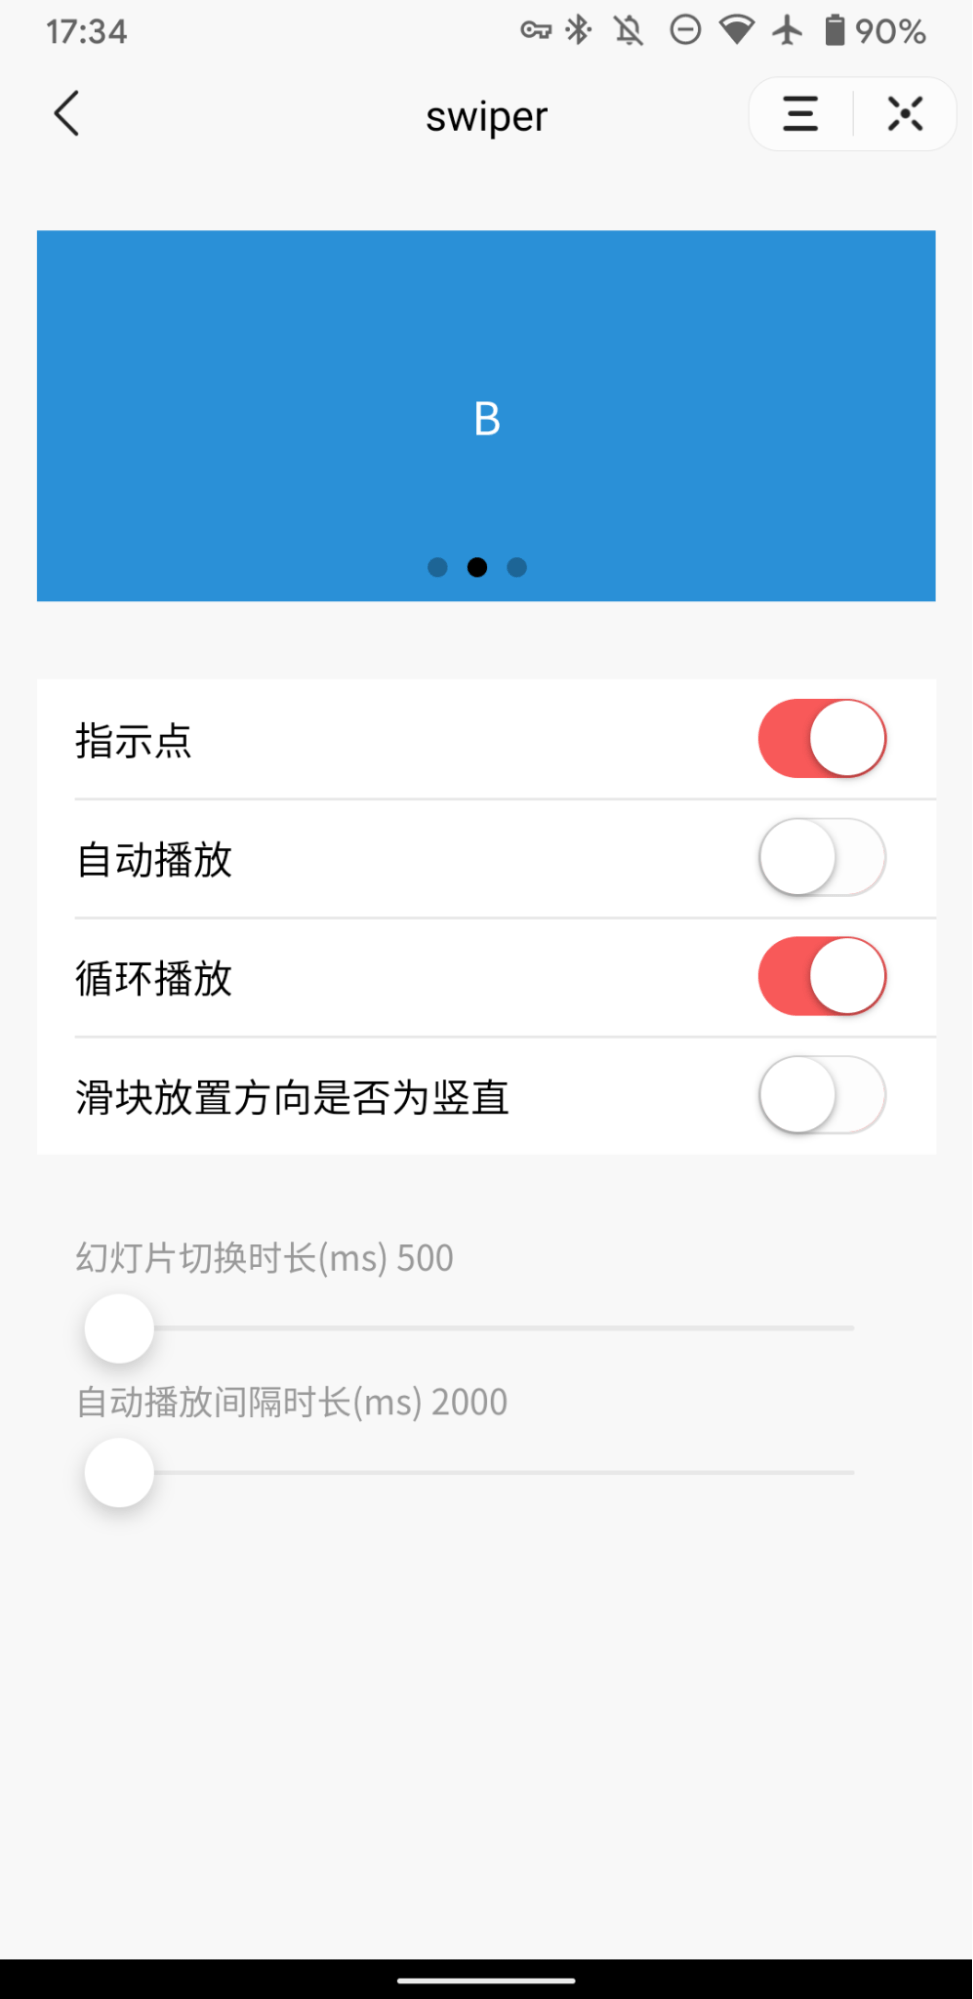 The Douyin demo mini app showcasing the Douyin slider (carousel) component with toggles for auto-advance, dot indicators, etc.